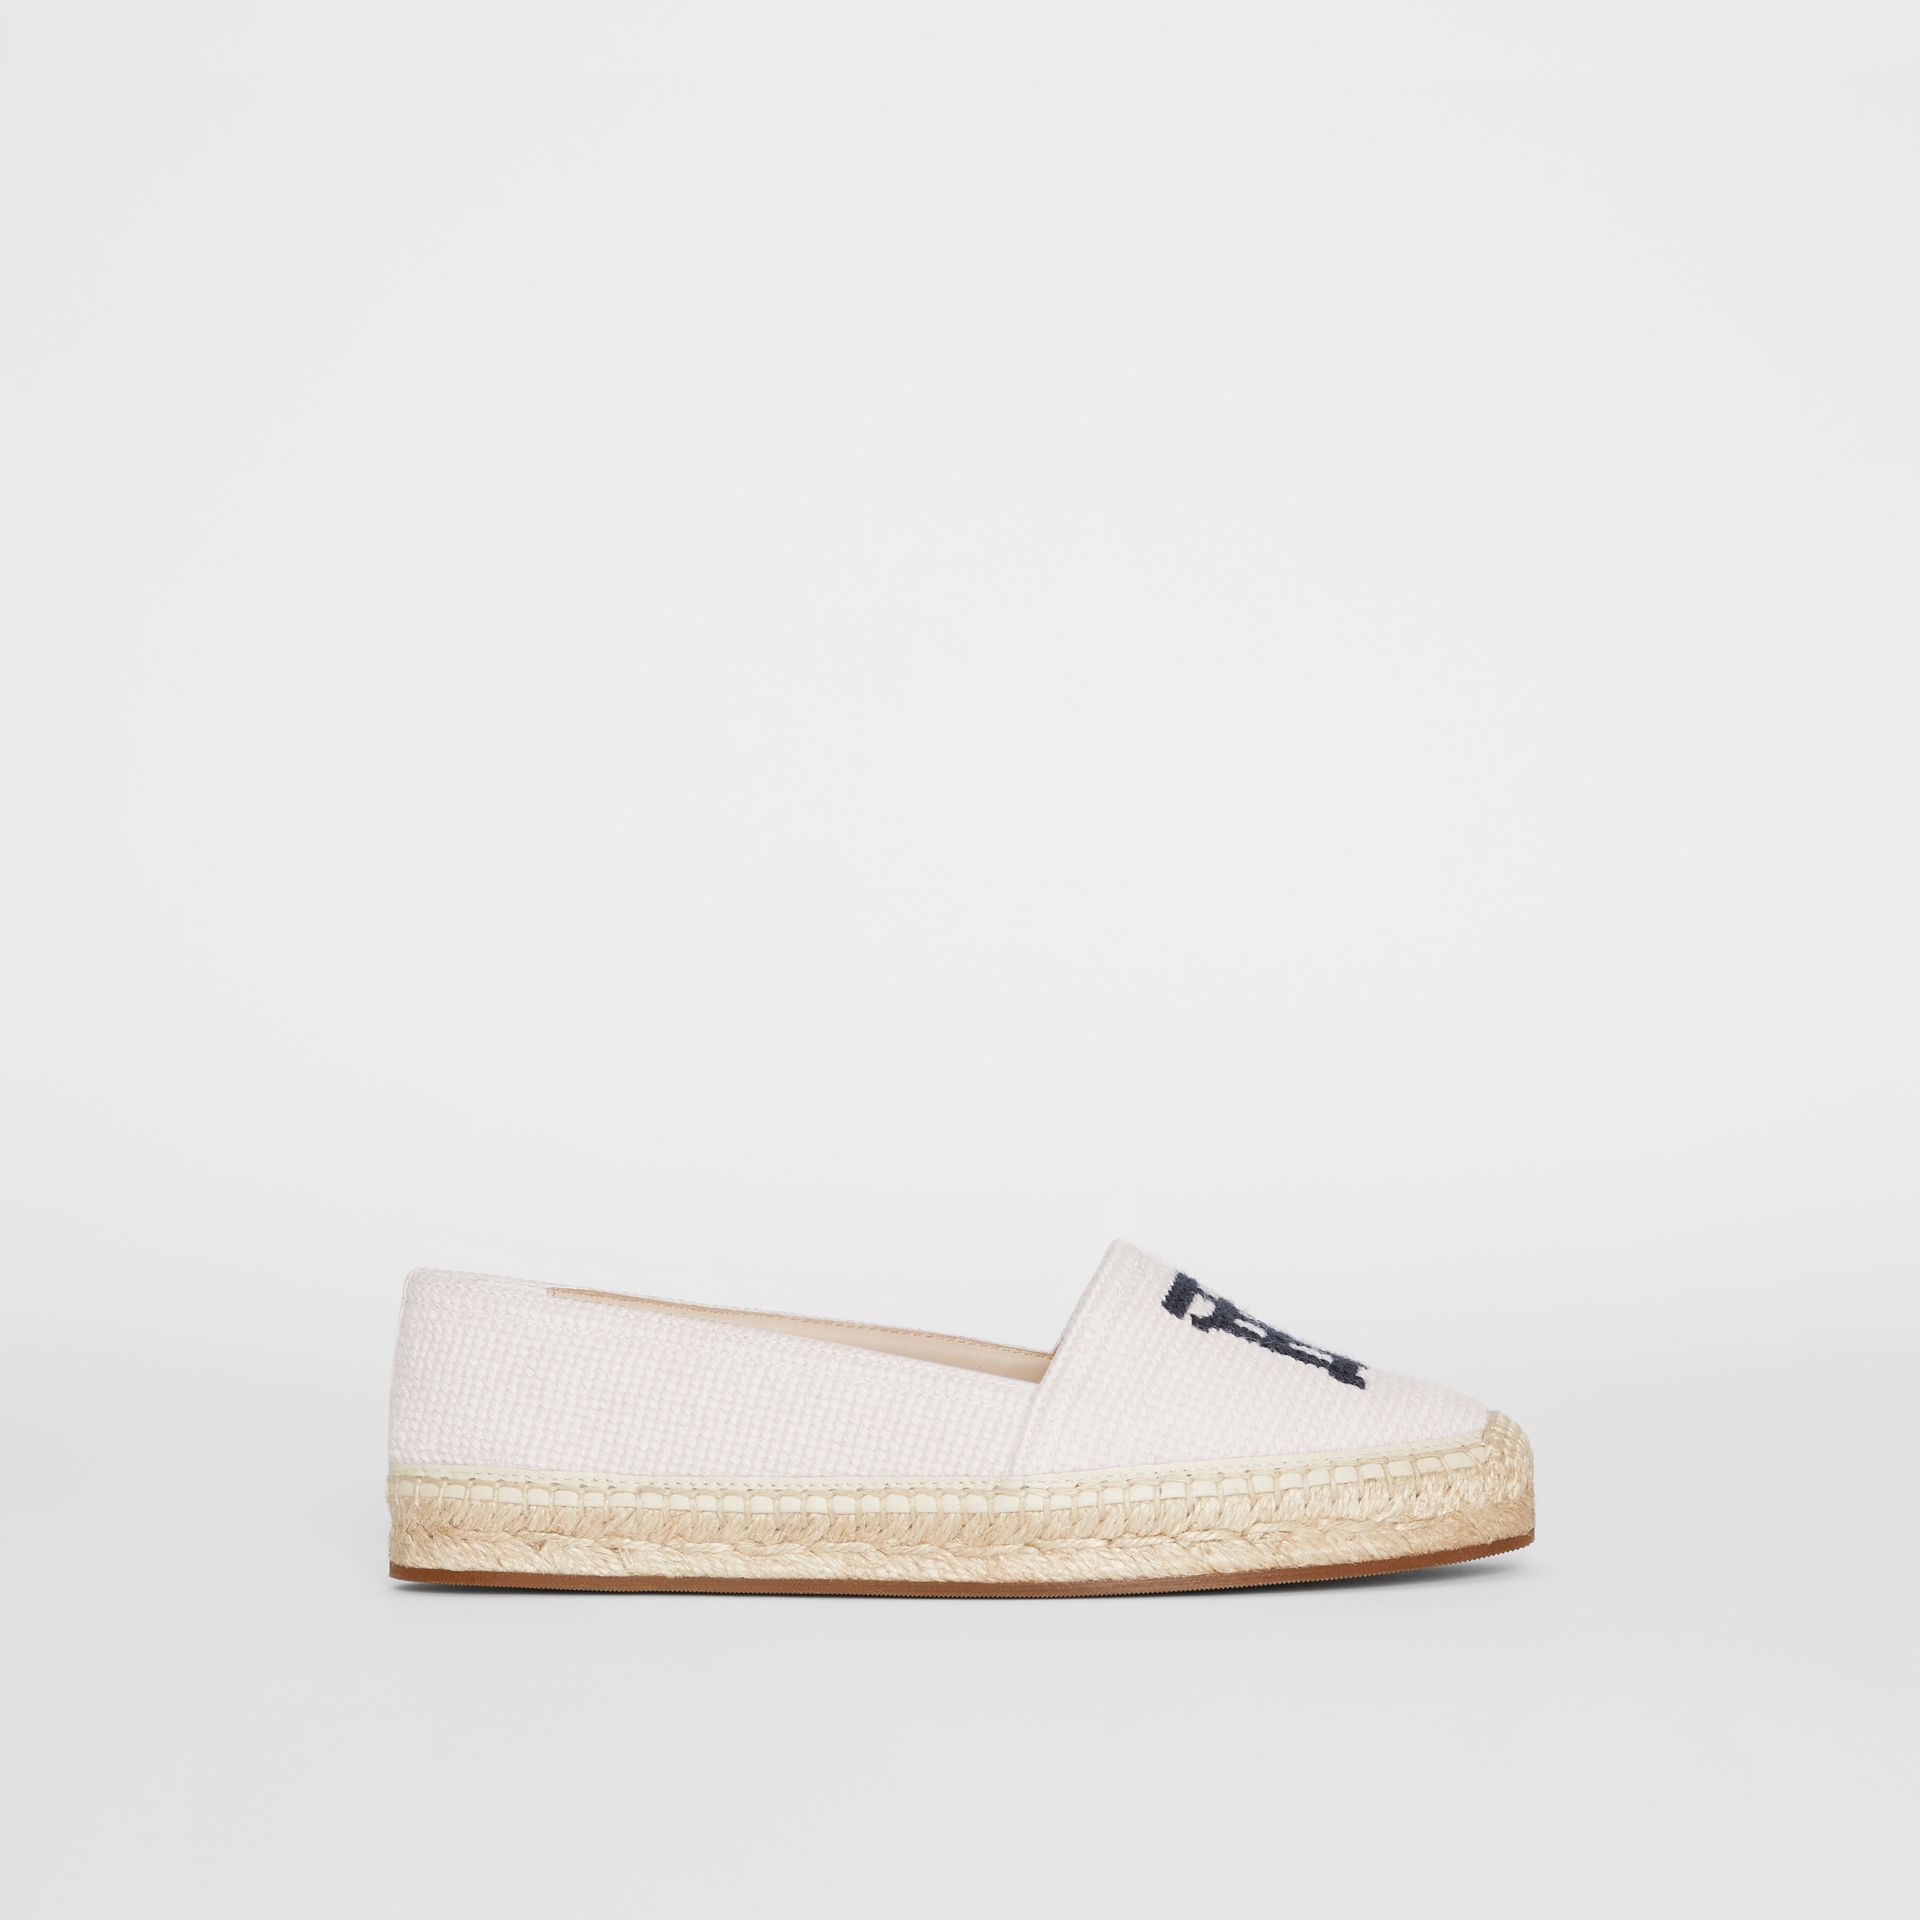 Monogram Motif Cotton and Leather Espadrilles in Ecru/black | Burberry - gallery image 4